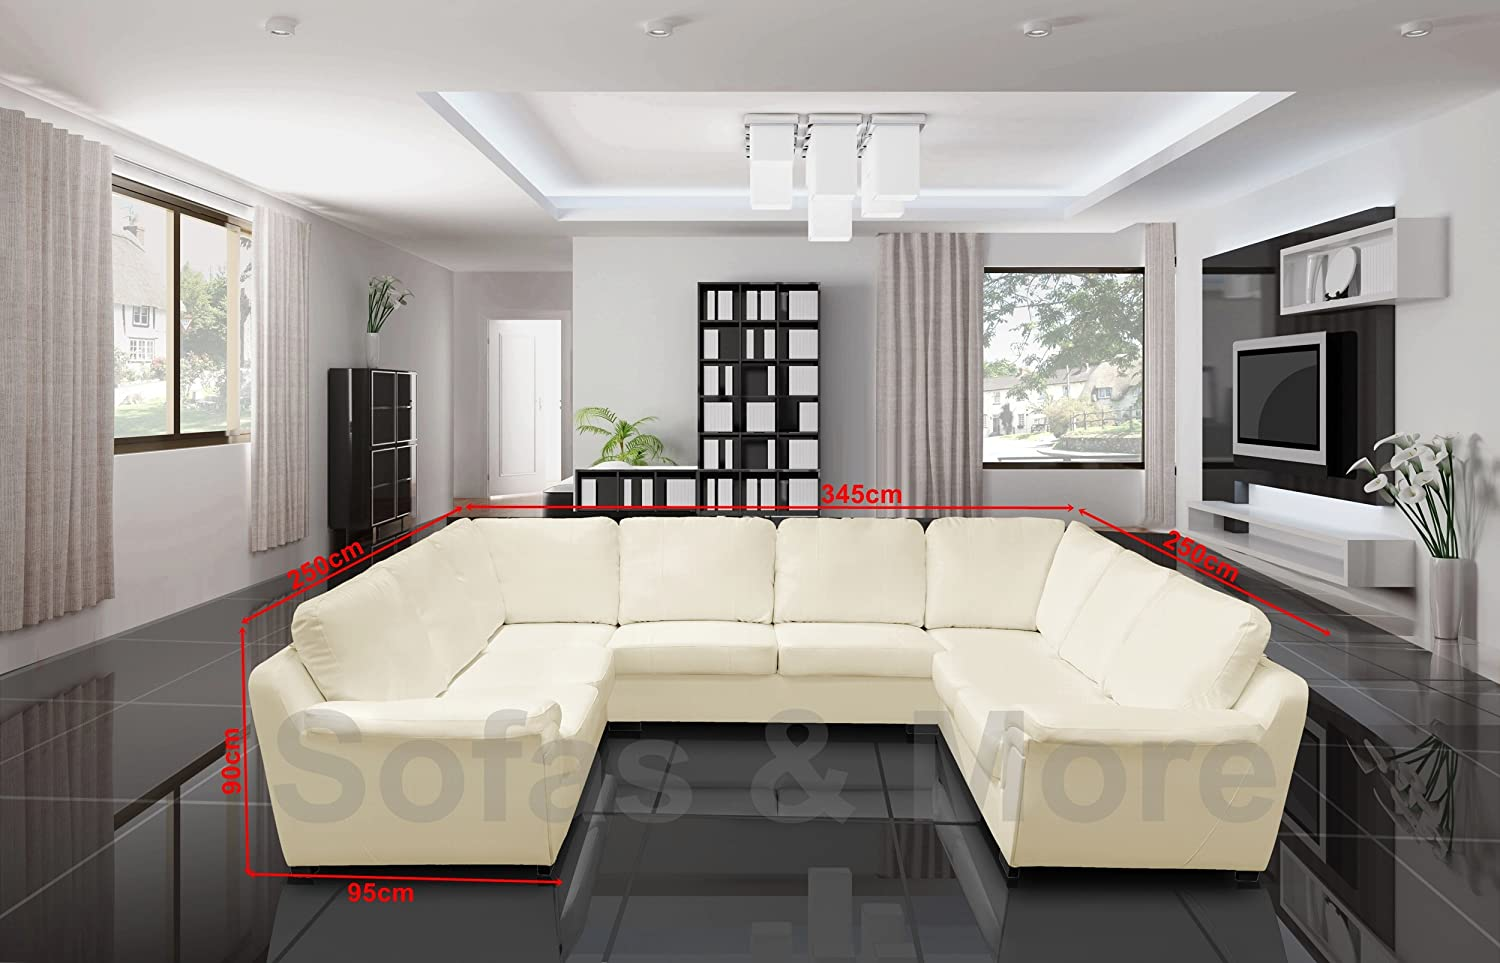 Miraculous Amy Faux Leather Big U Shape Corner Sofa Black White Brown Cream White Unemploymentrelief Wooden Chair Designs For Living Room Unemploymentrelieforg